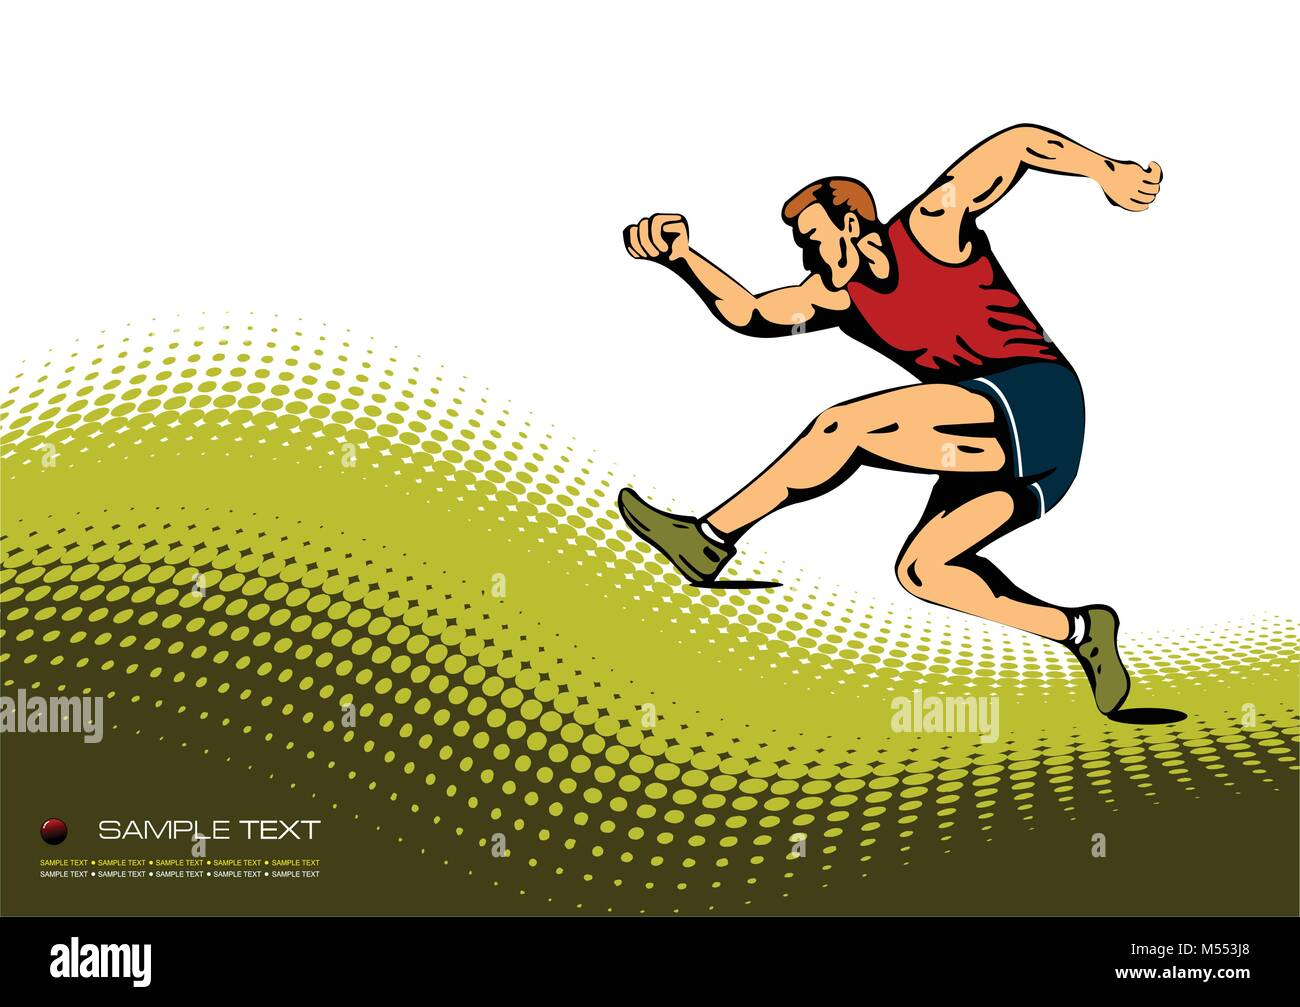 Abstract background with  running man image. Vector illustration - Stock Vector